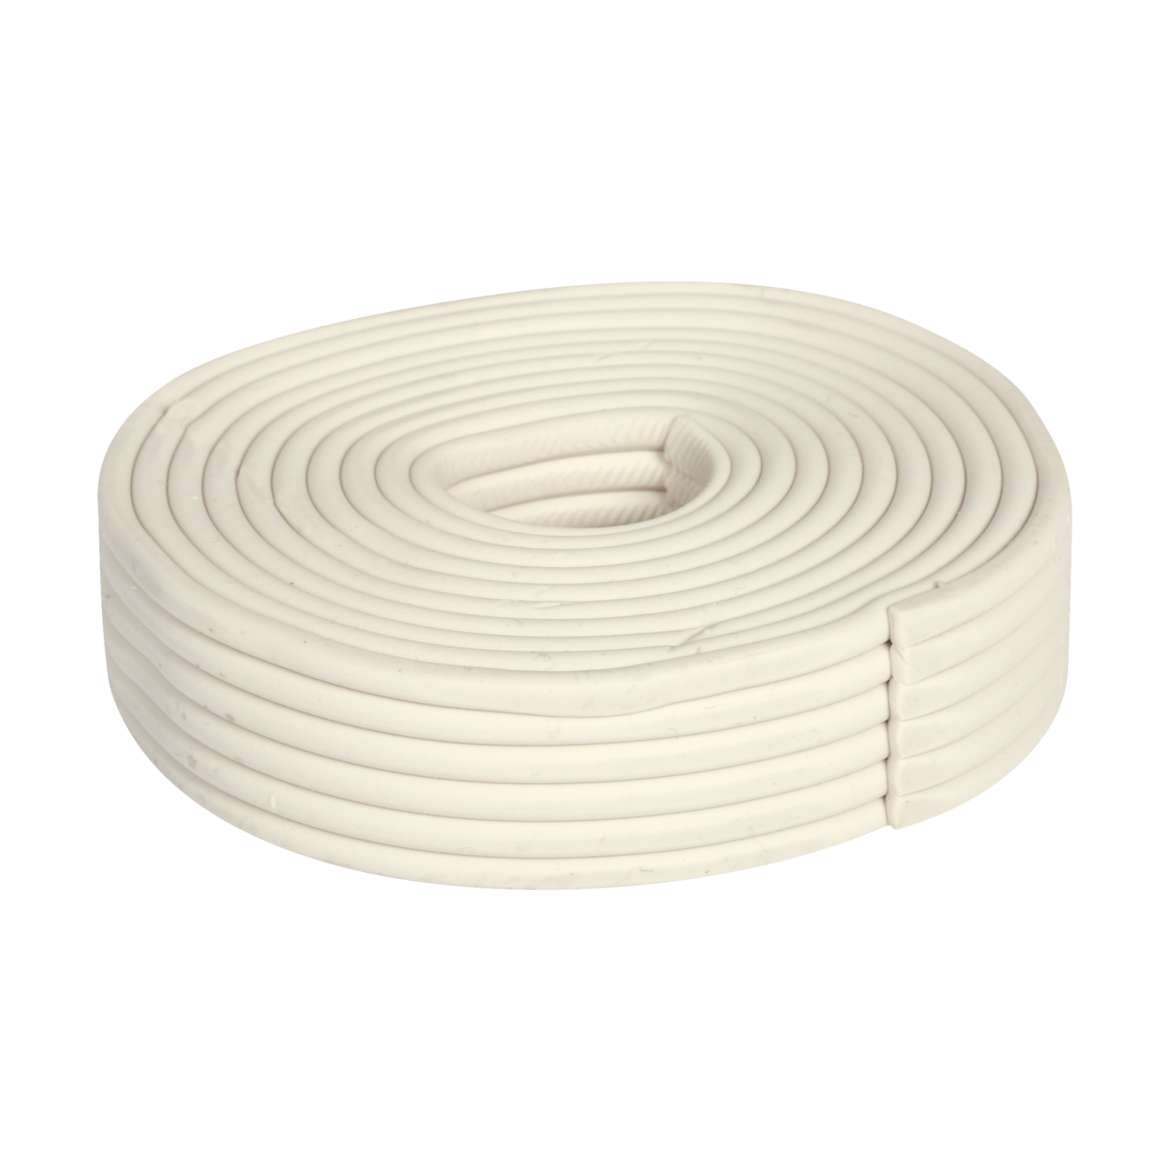 Dennis rope caulk weather strip